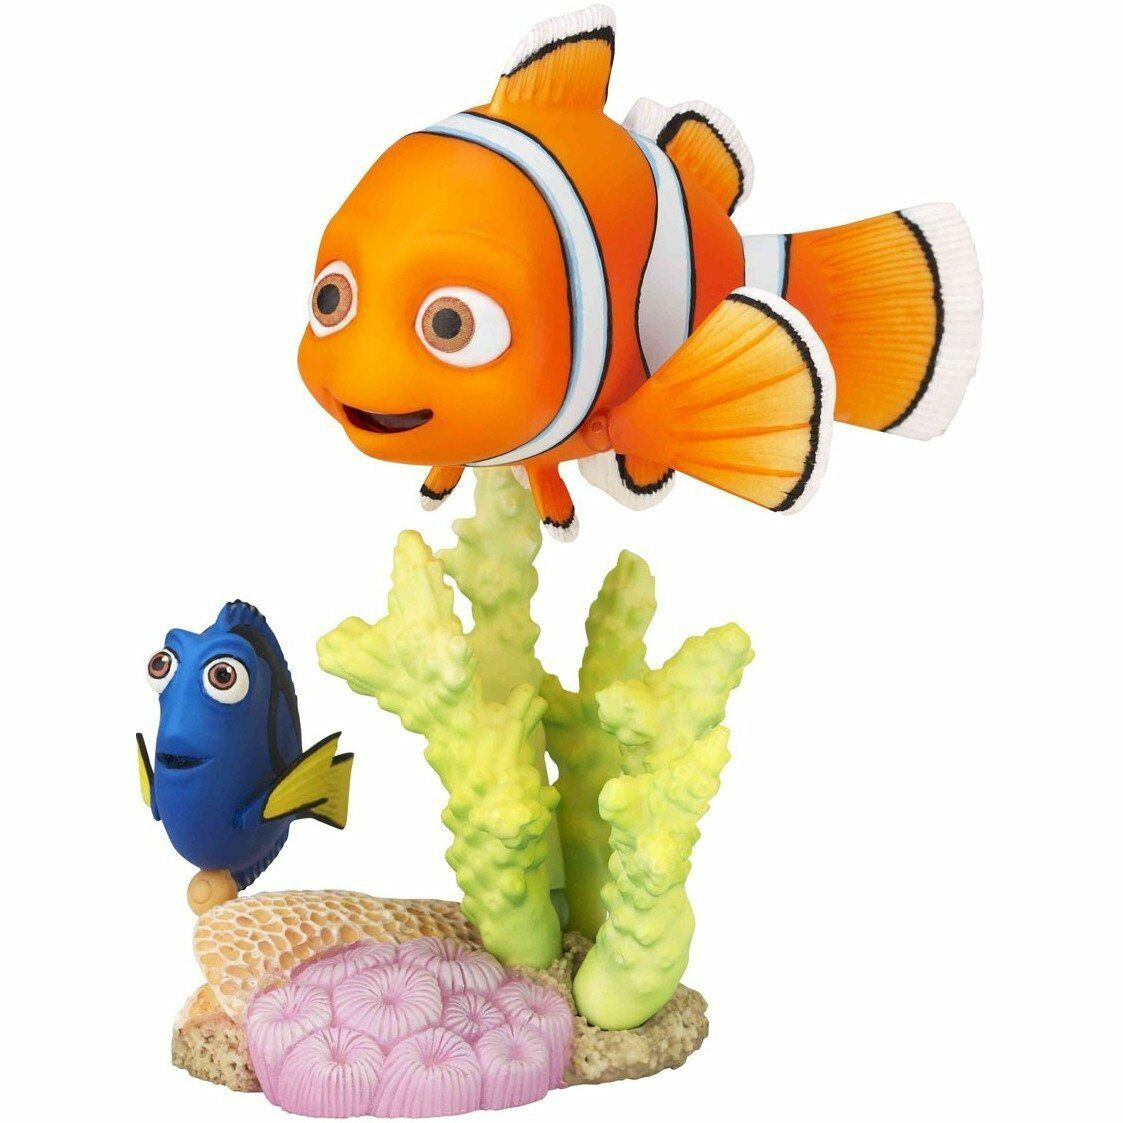 Revoltech Pixar Finding Nemo With Dory Articulated Articulated Articulated Action Figure 7008b1